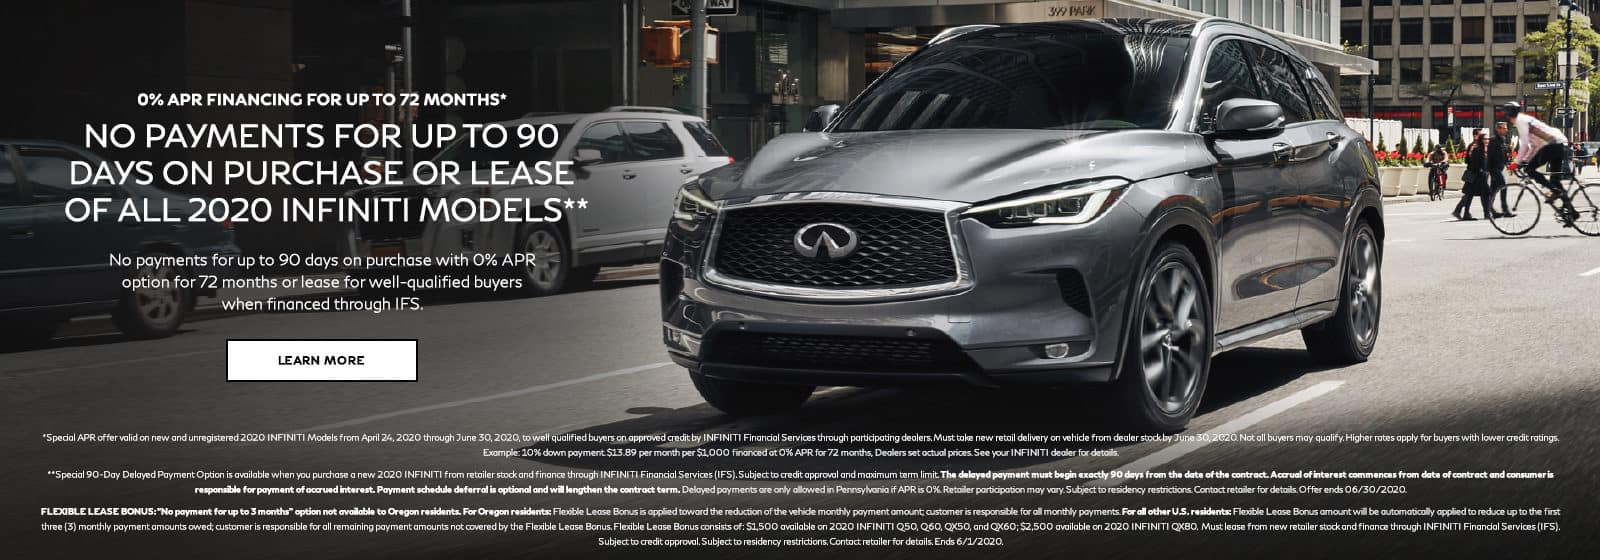 0% APR Financing for 72 months with no payments for 90 days on purchase or lease of all 2020 INFINITI Models. Restrictions may apply. See retailer for complete details. Image of a 2020 QX50 driving down a busy street.